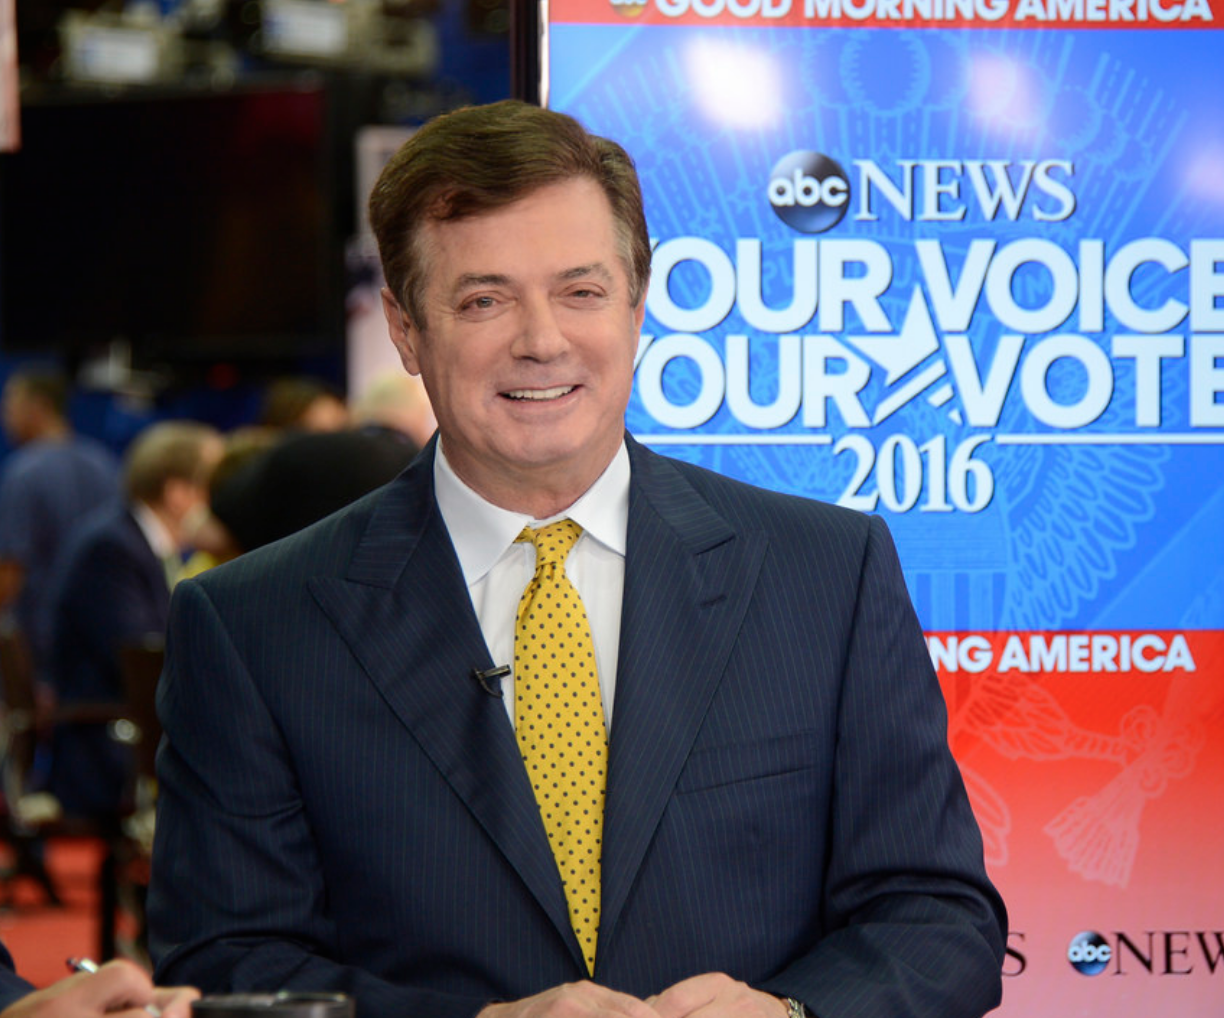 Paul Manafort home Search FBI Photo: Flickr, Disney ABCTelevisionGroup, No Change